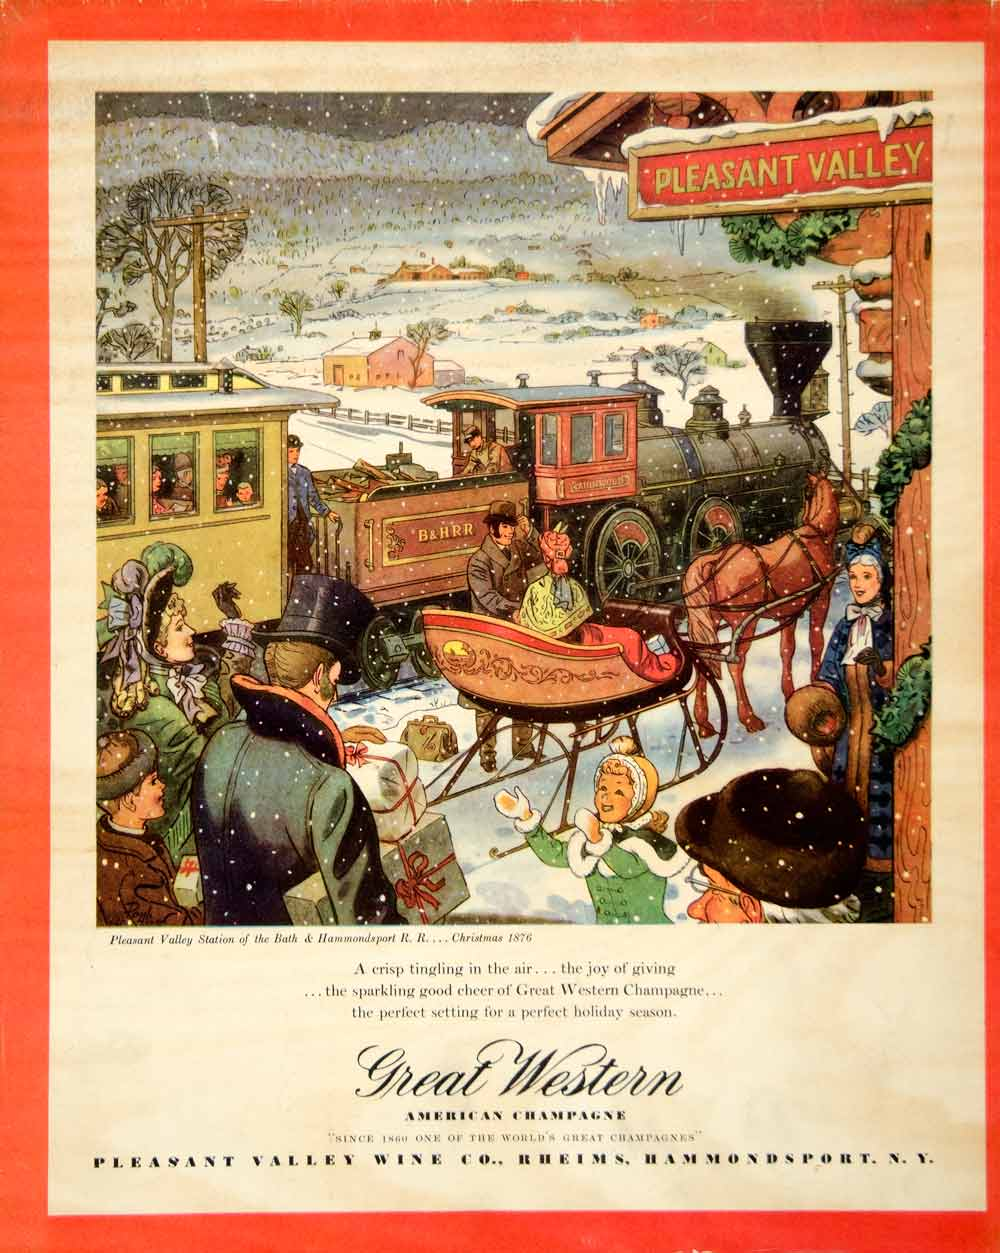 1946 Ad Great Western American Champagne Pleasant Valley Station Train FTM1